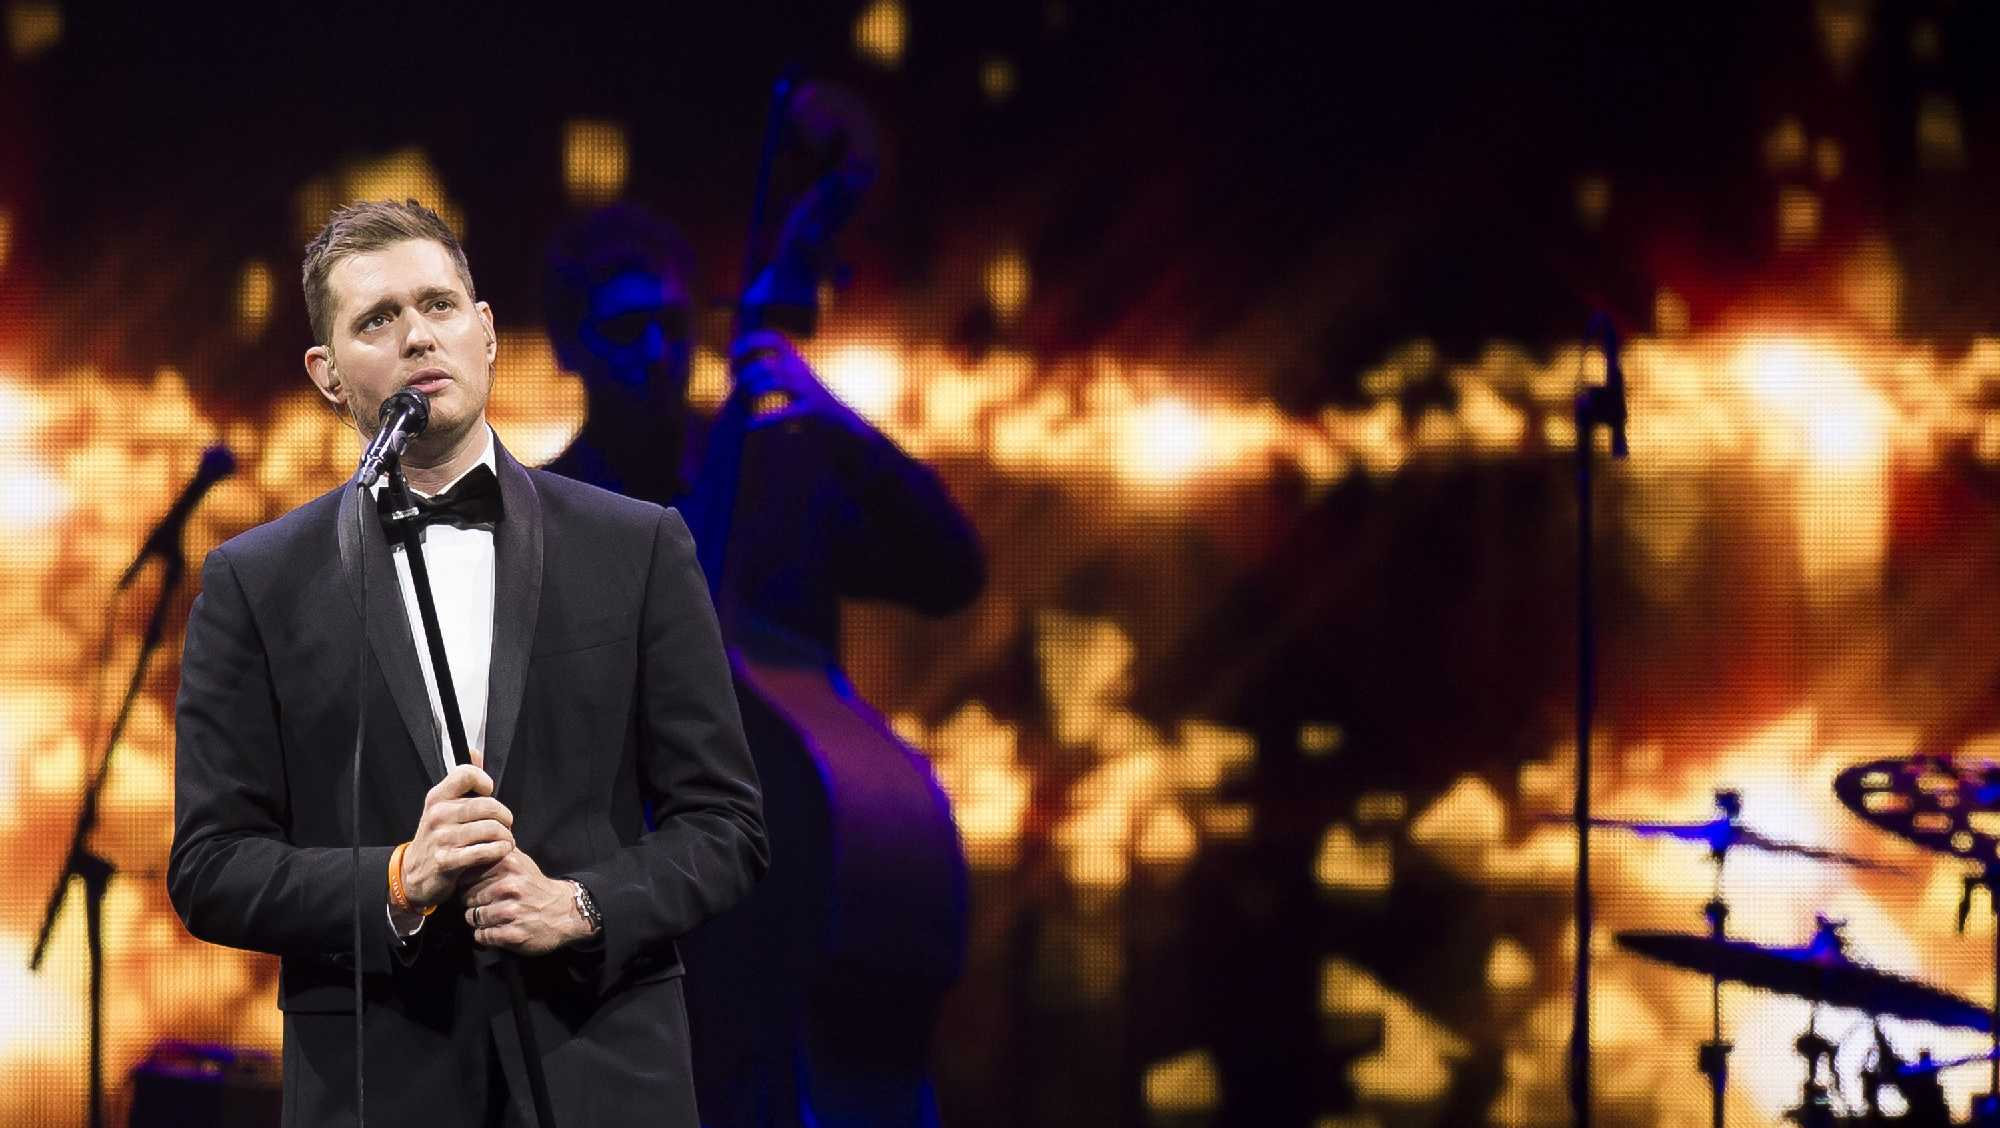 Michael Buble performs in concert at Madison Square Garden on Tuesday, July 8, 2014, in New York.